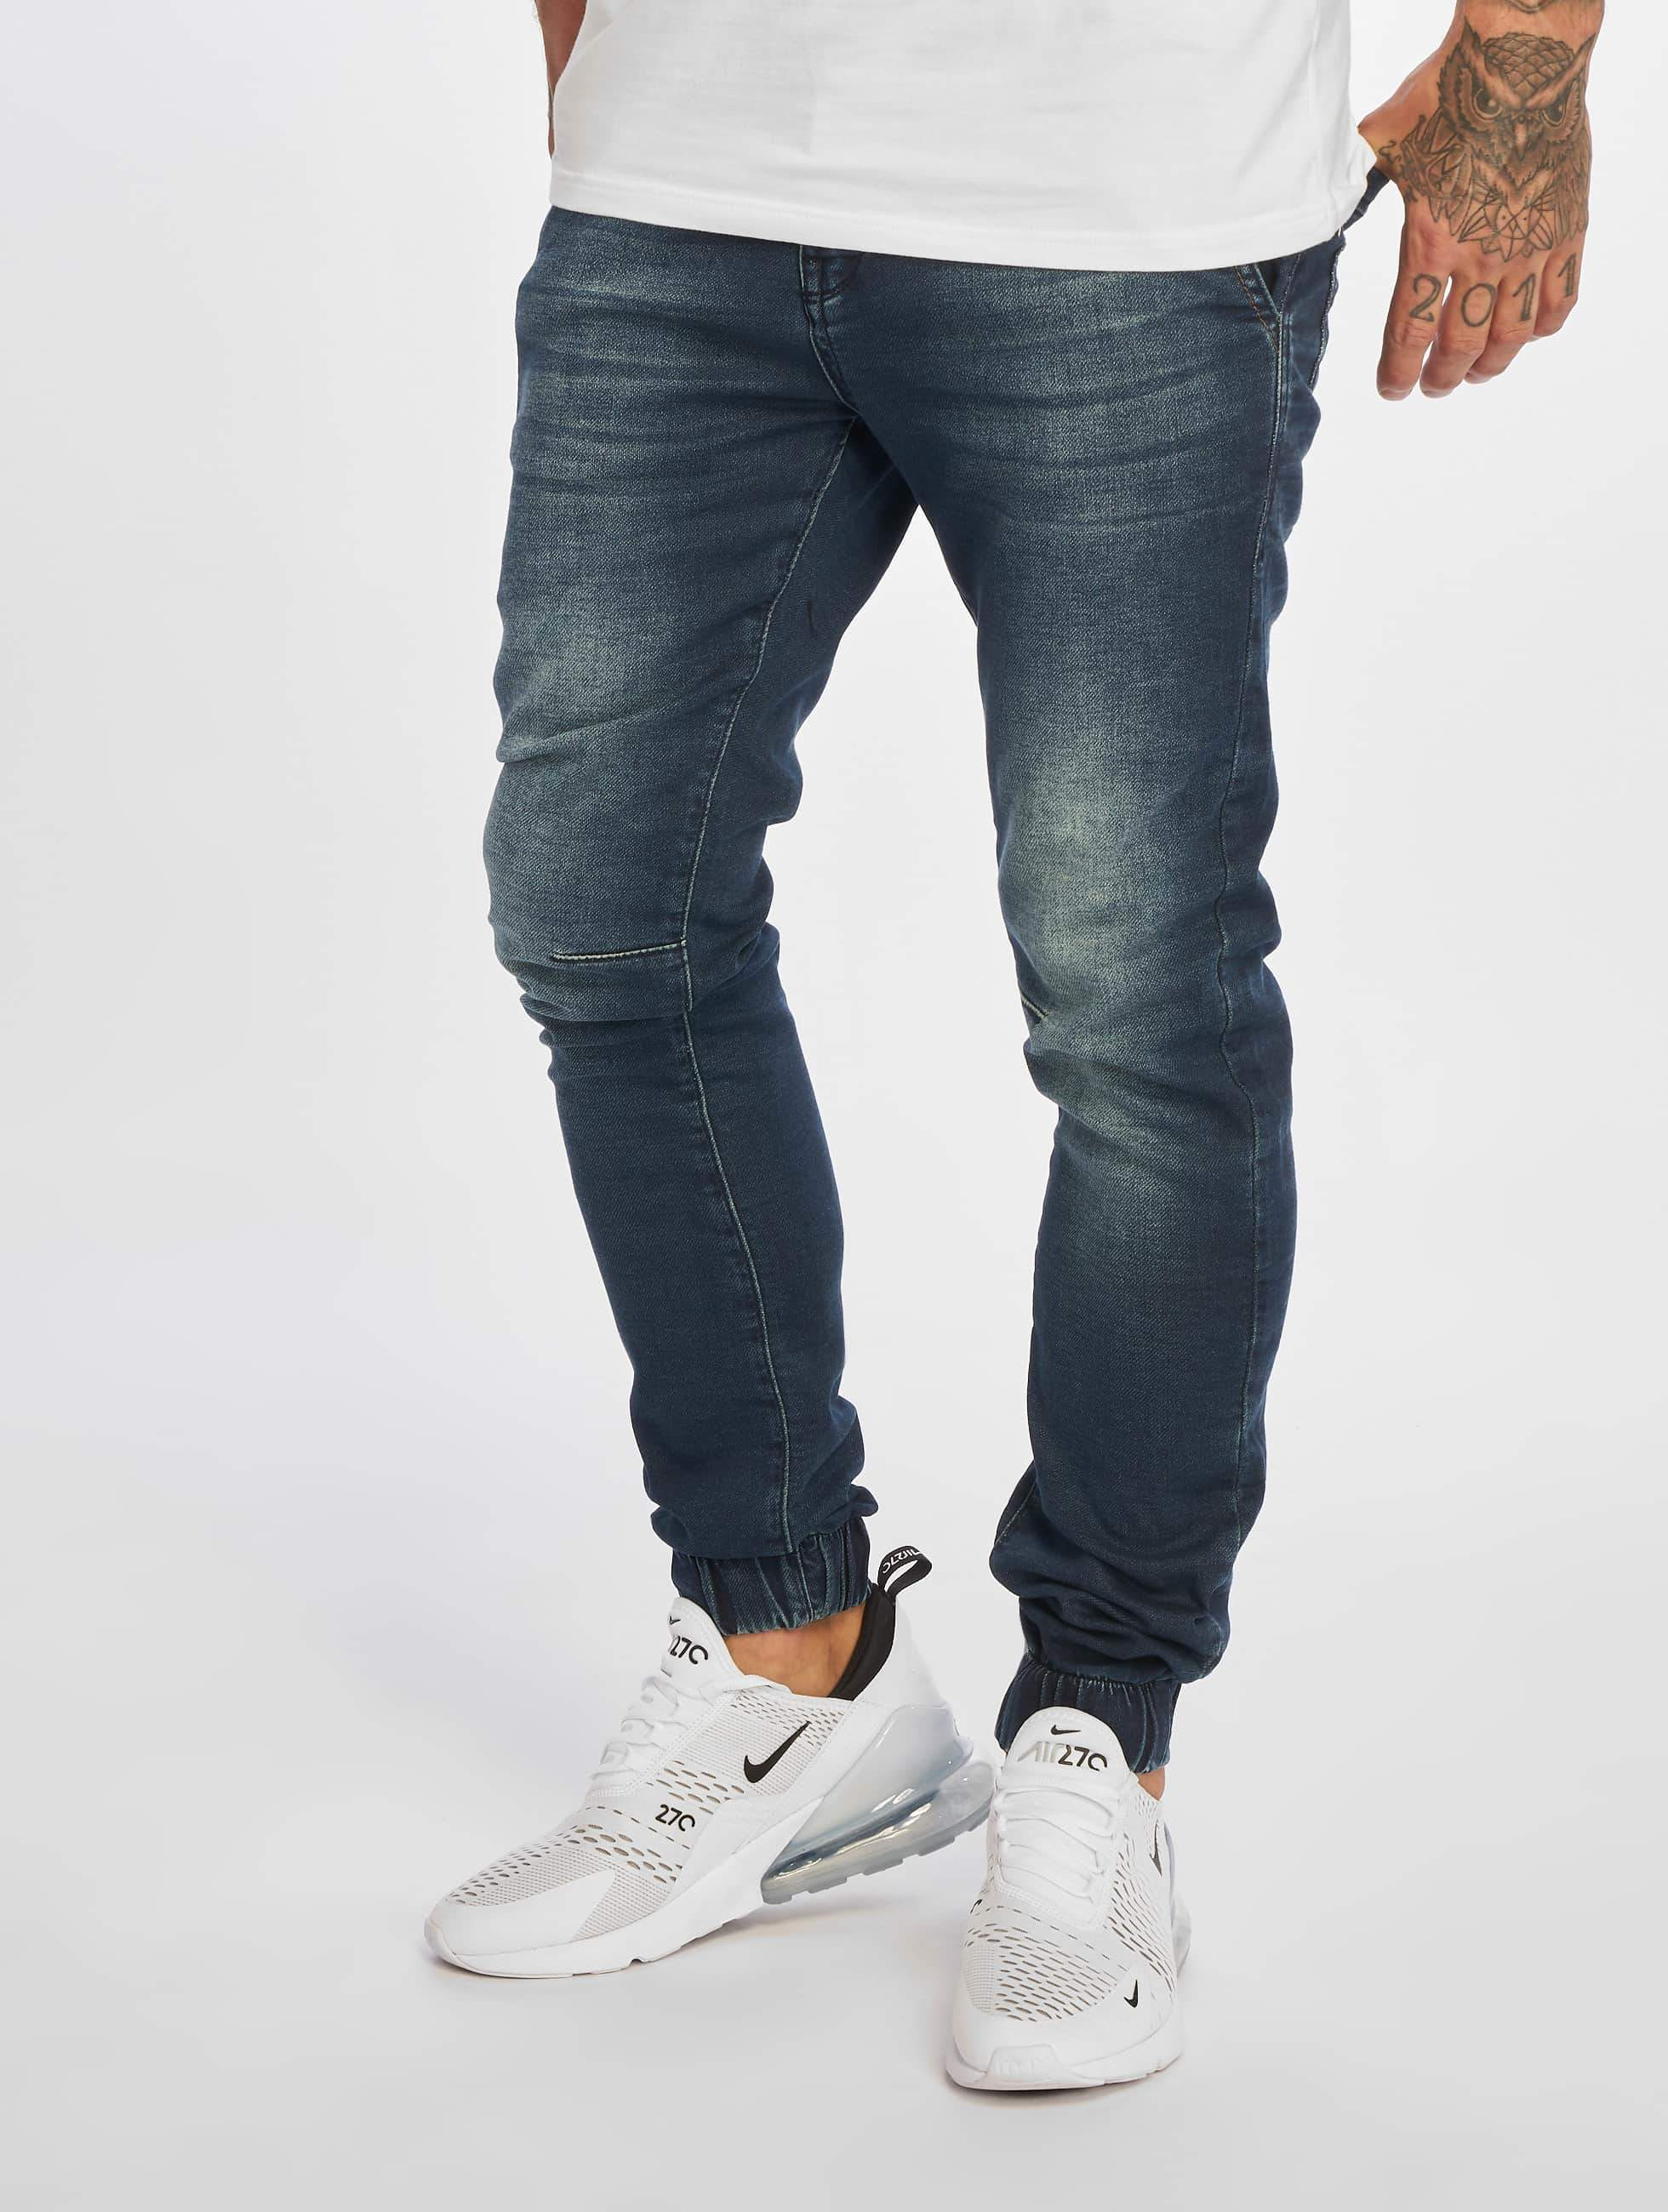 Just Rhyse / Sweat Pant San Miguel in blue W 38